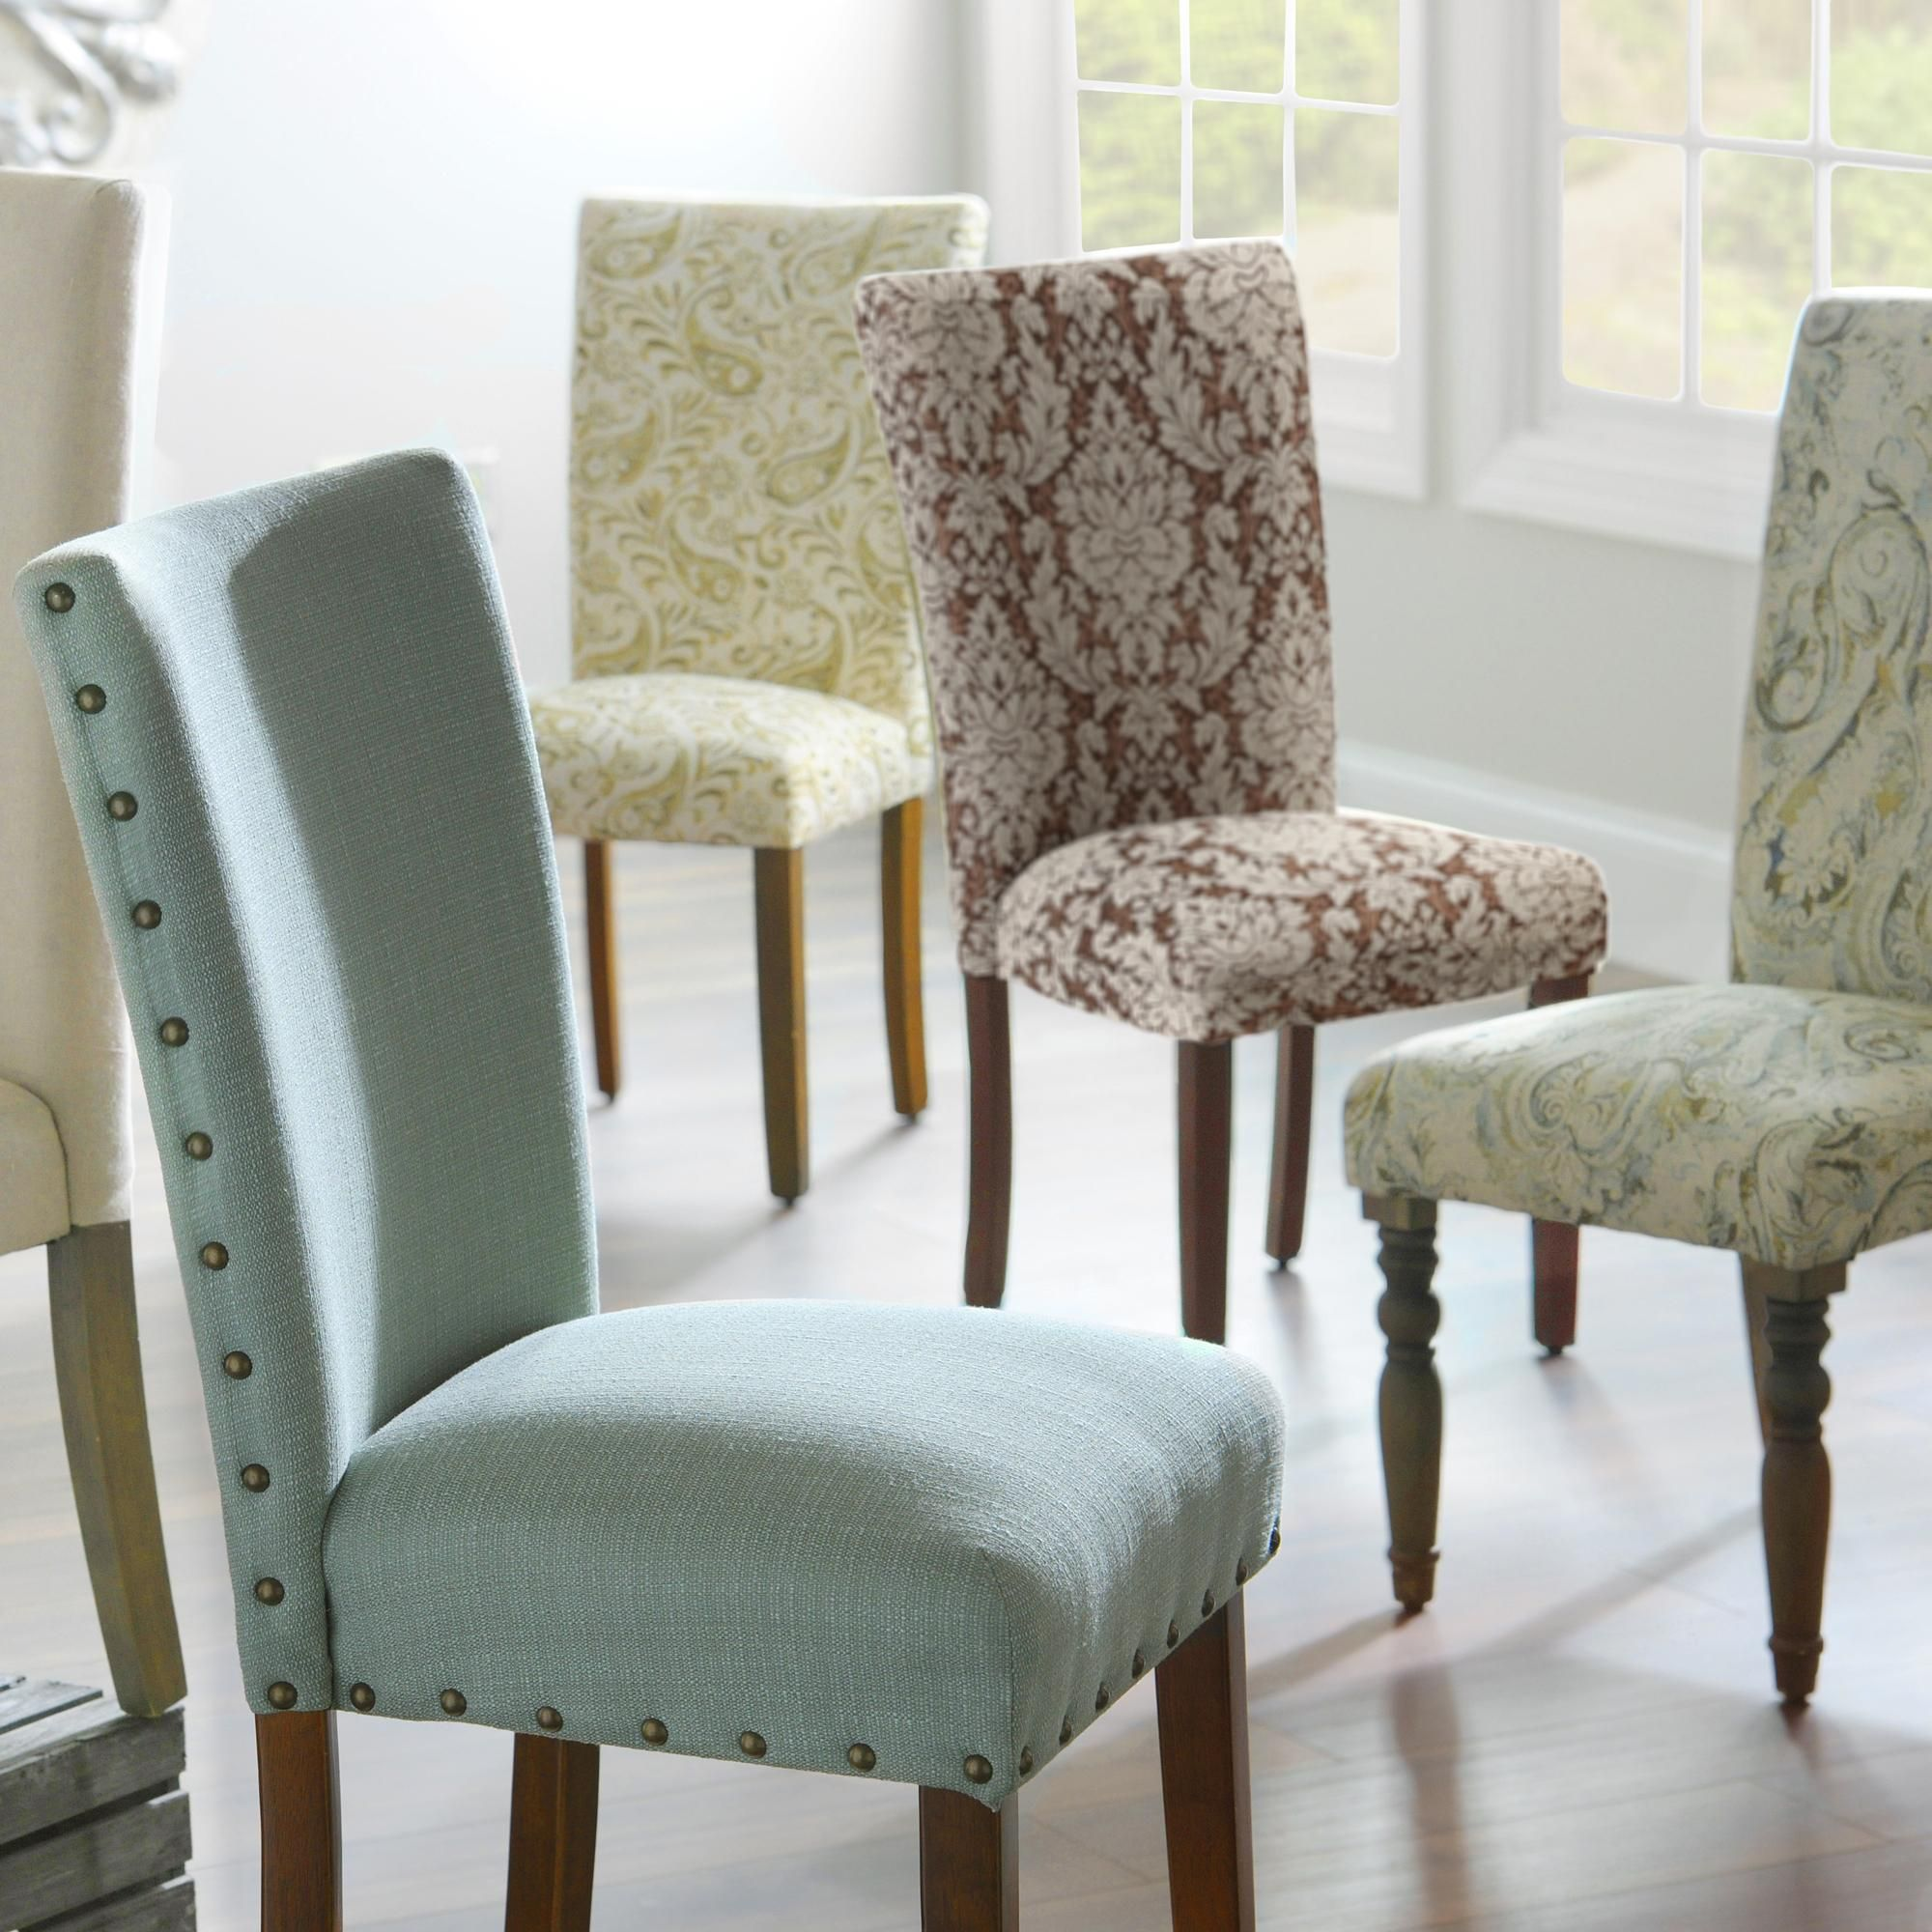 Our Very Popular Parsons Chairs Are On Sale! Save $20 Off